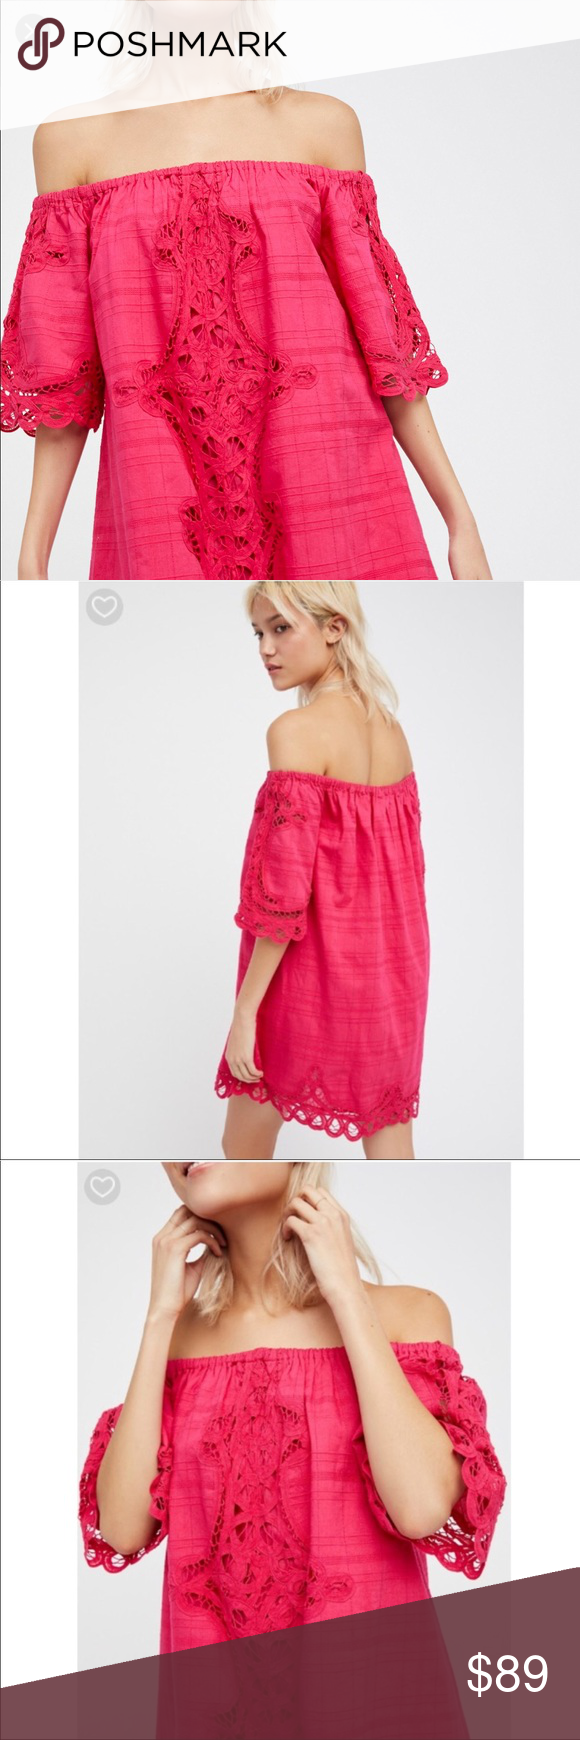 dcbfeea22e8f42 Free People Battenburg Off Shoulder Mini Dress New Free People Battenburg  Off the Shoulder Mini Dress NWOT. Absolutely stunning and well made!